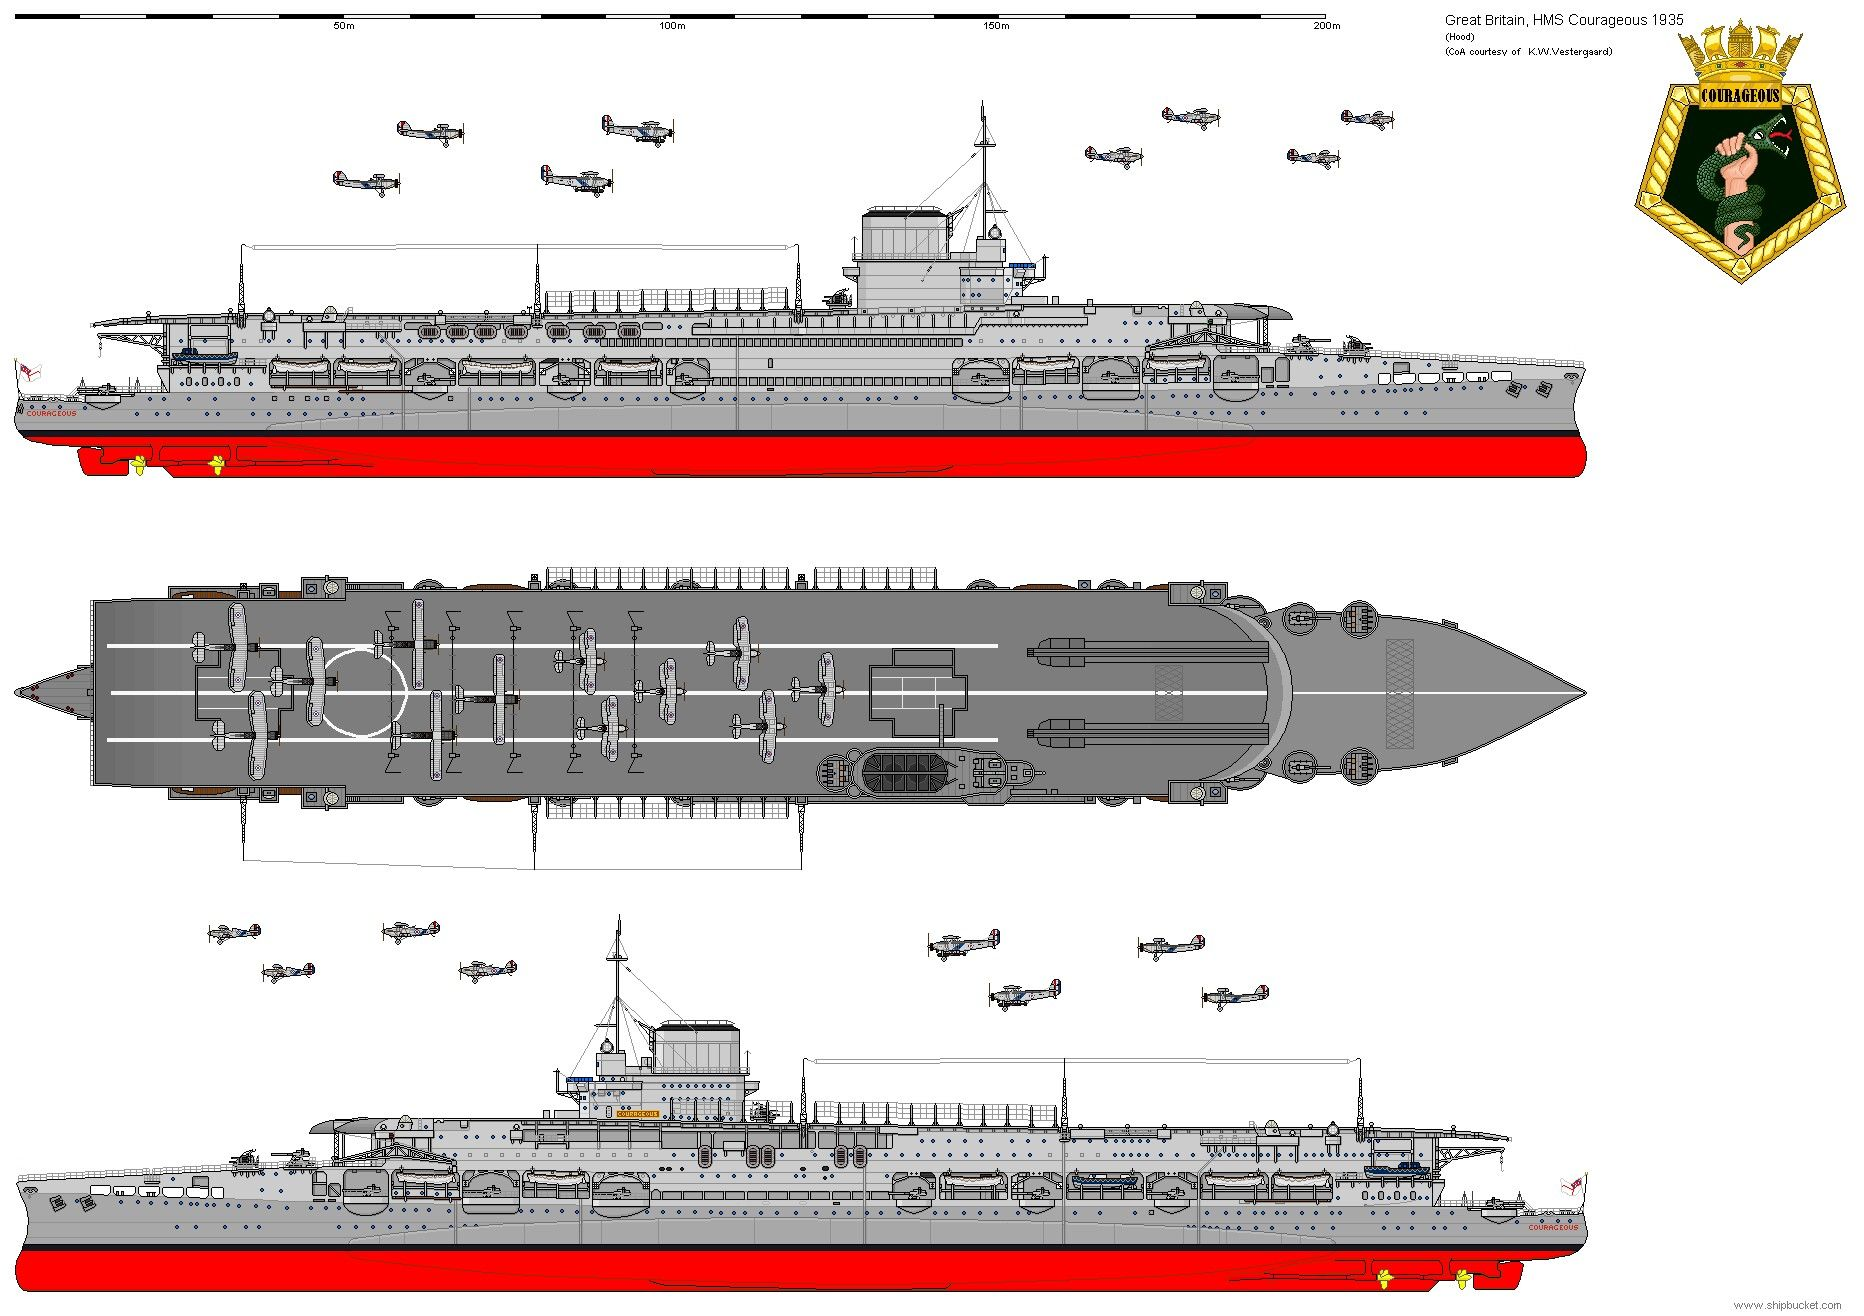 minecraft uss enterprise aircraft carrier ww2 with 417638565428850151 on Wwii Uss Enterprise Cv 6 likewise 417638565428850151 moreover Ship Coloring Page further Ww2 Uss Cv Lexington Class in addition Largest Lego Ship Ever Built Is Bigger Than Three Queen Sized Beds.